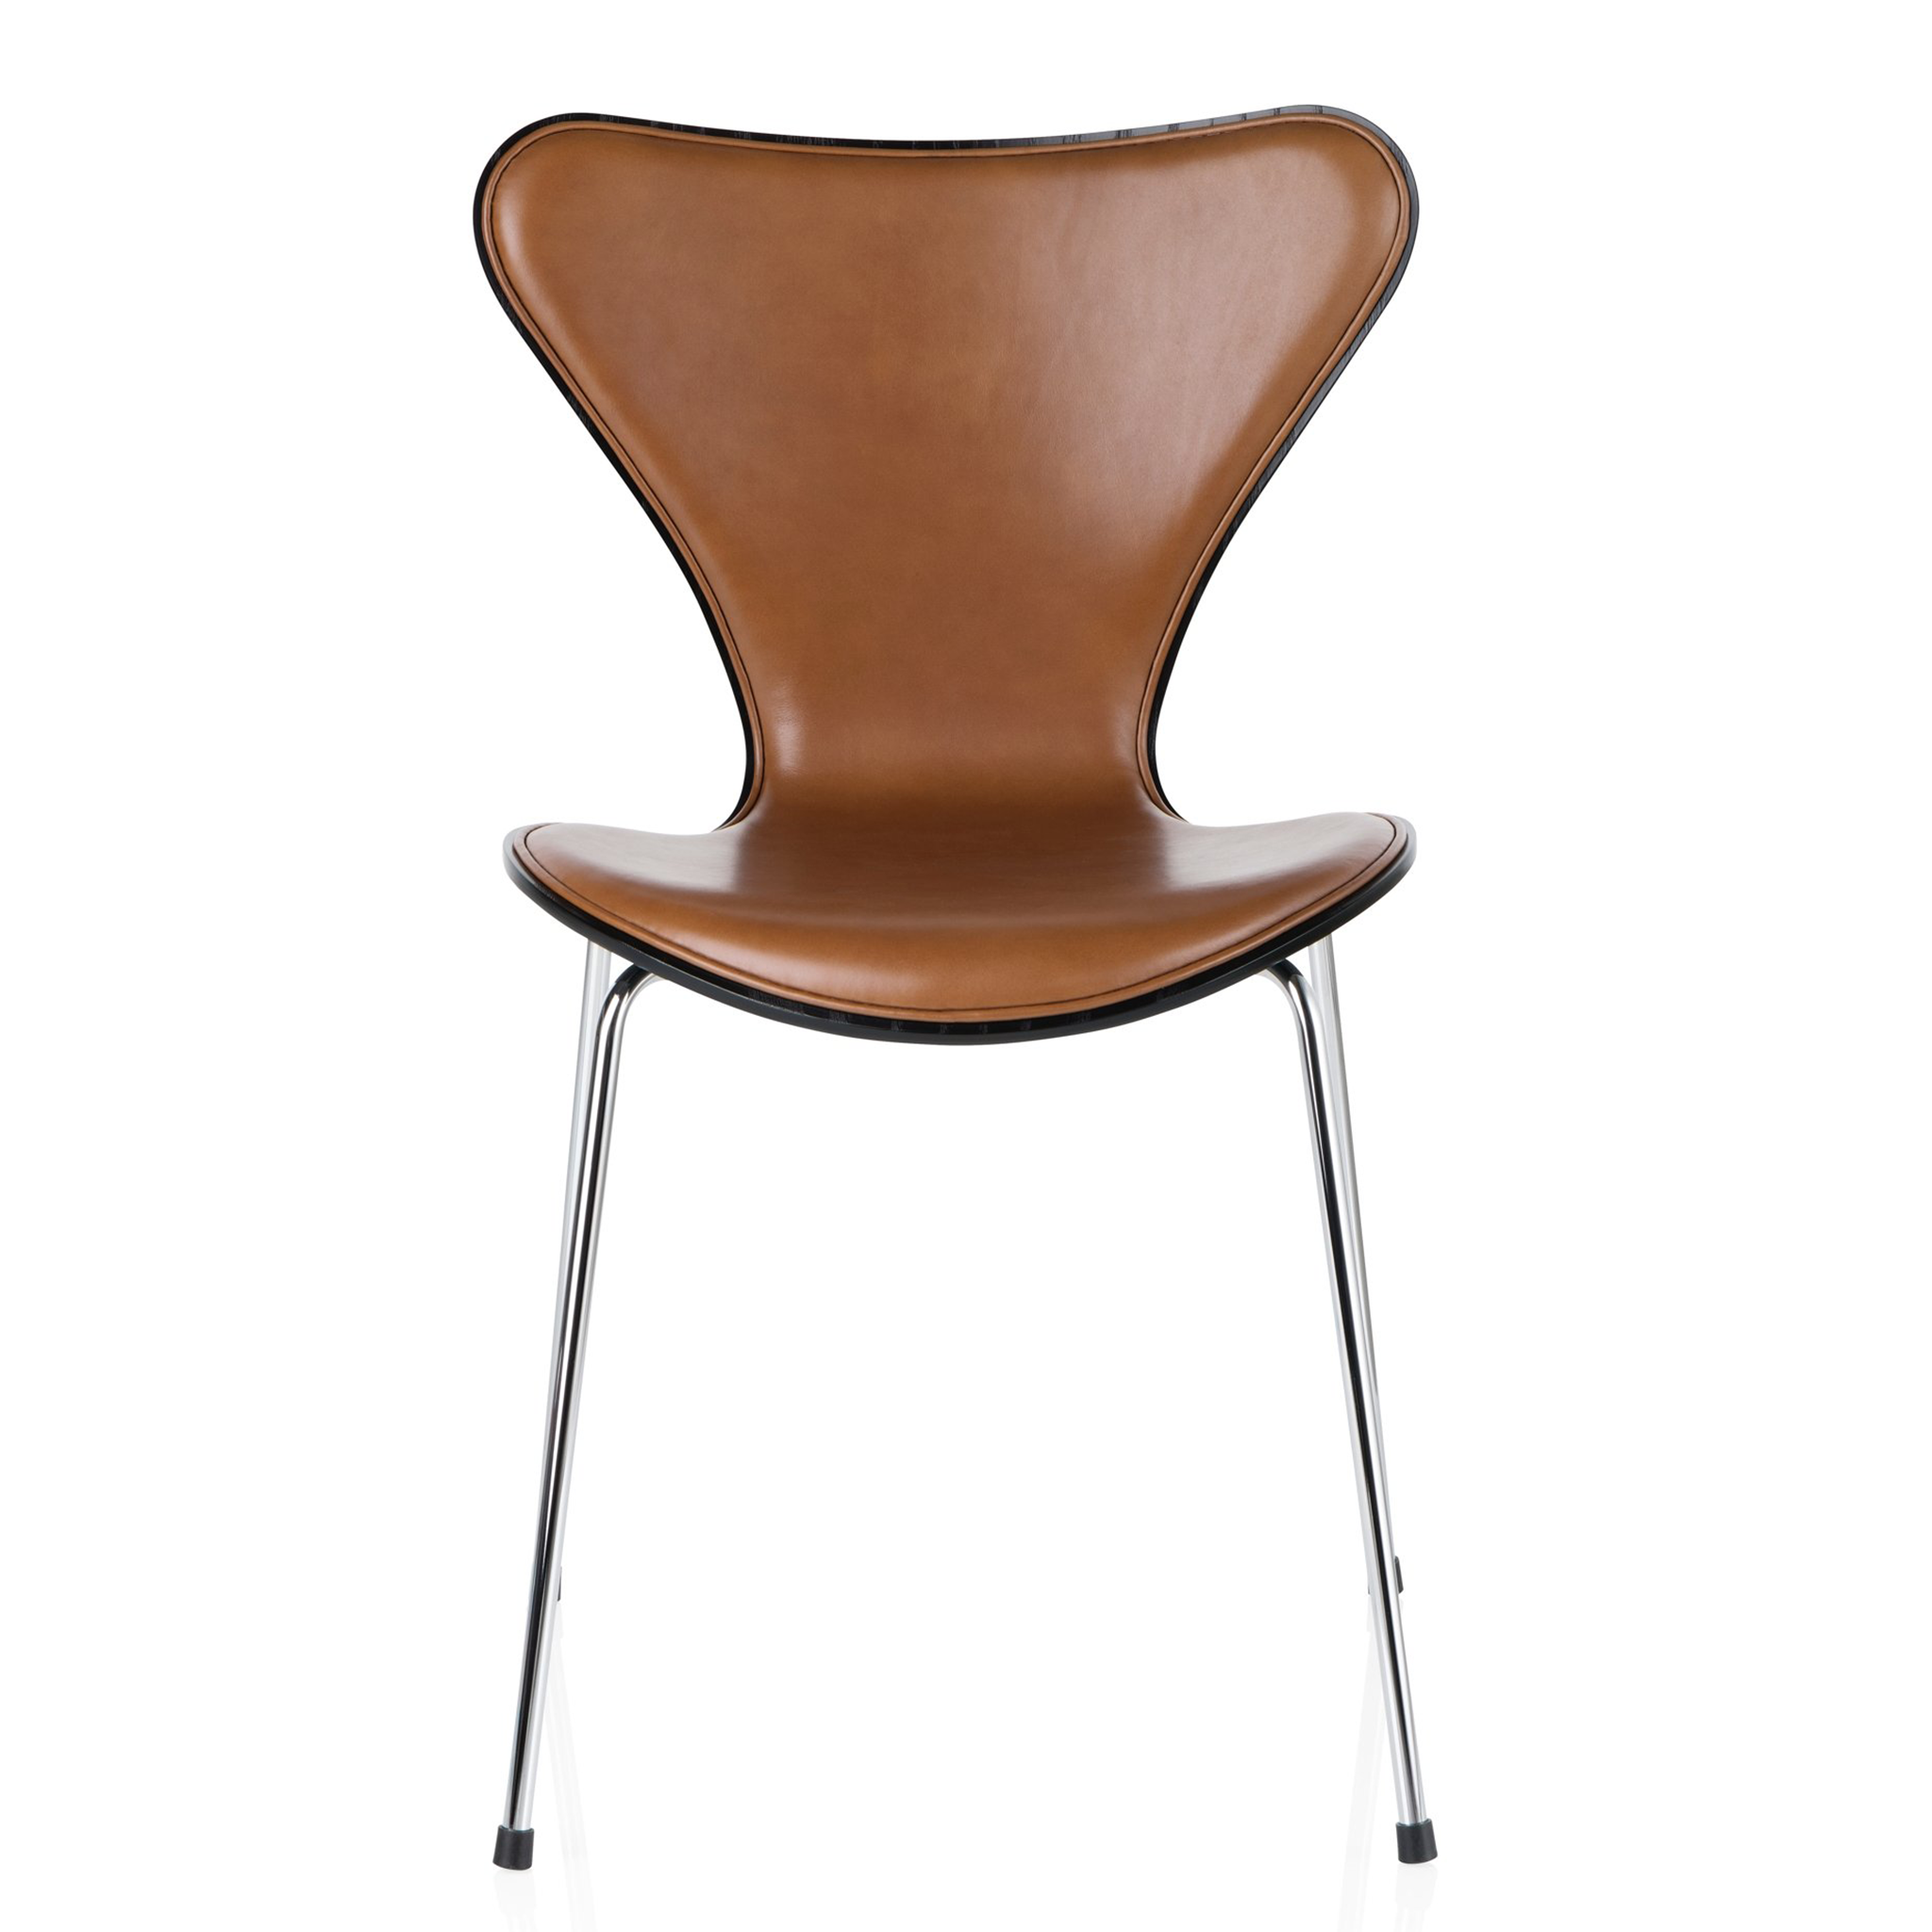 Series 7 Front Upholstered Chair Leather by Fritz Hansen